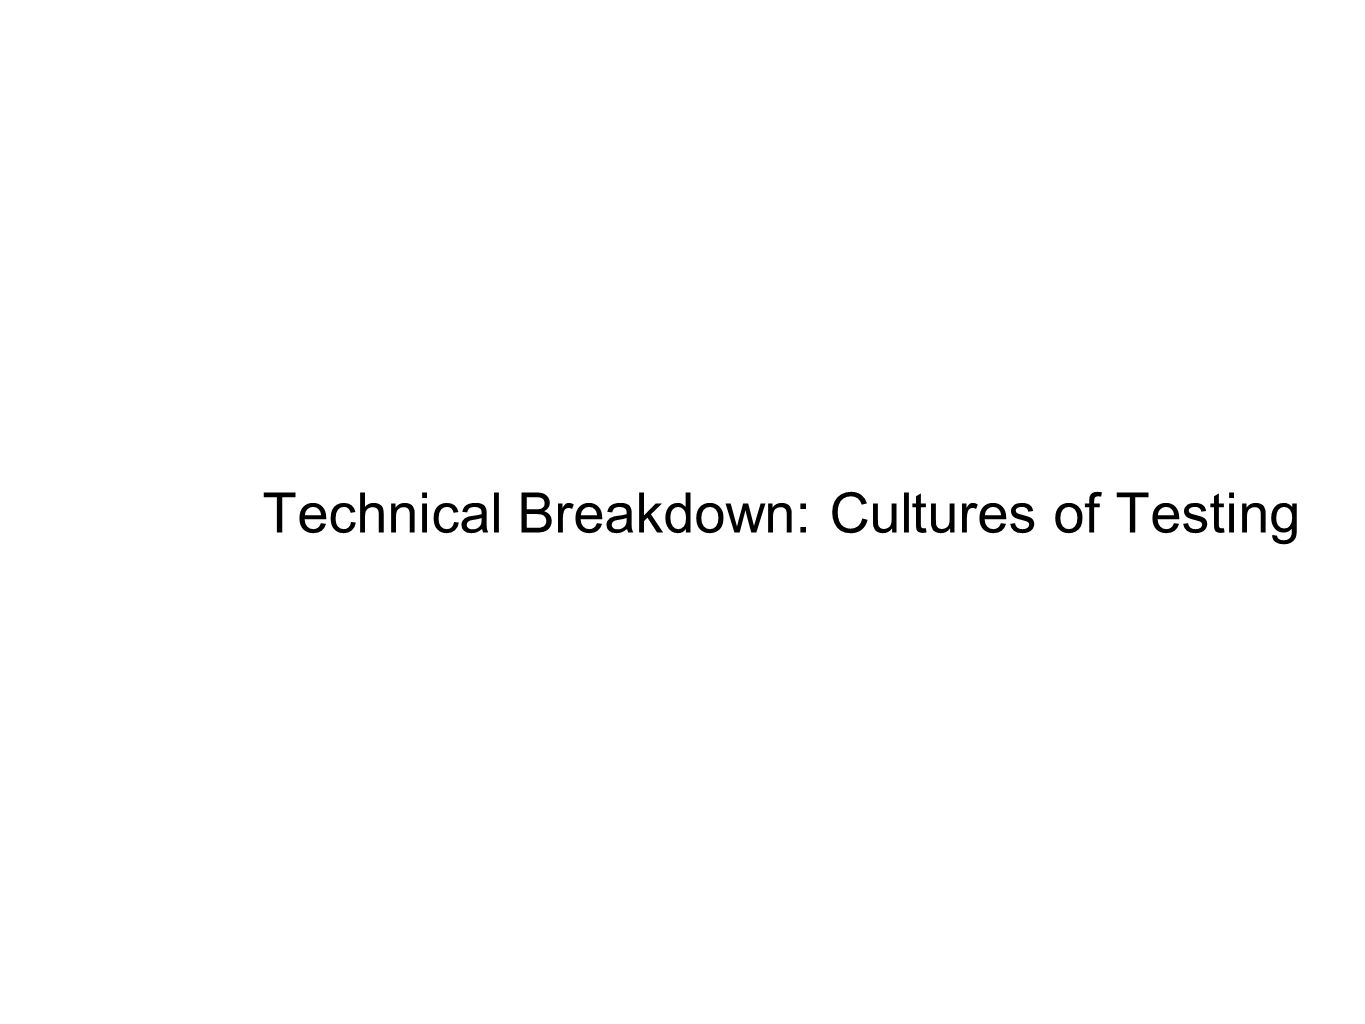 Technical Breakdown: Cultures of Testing